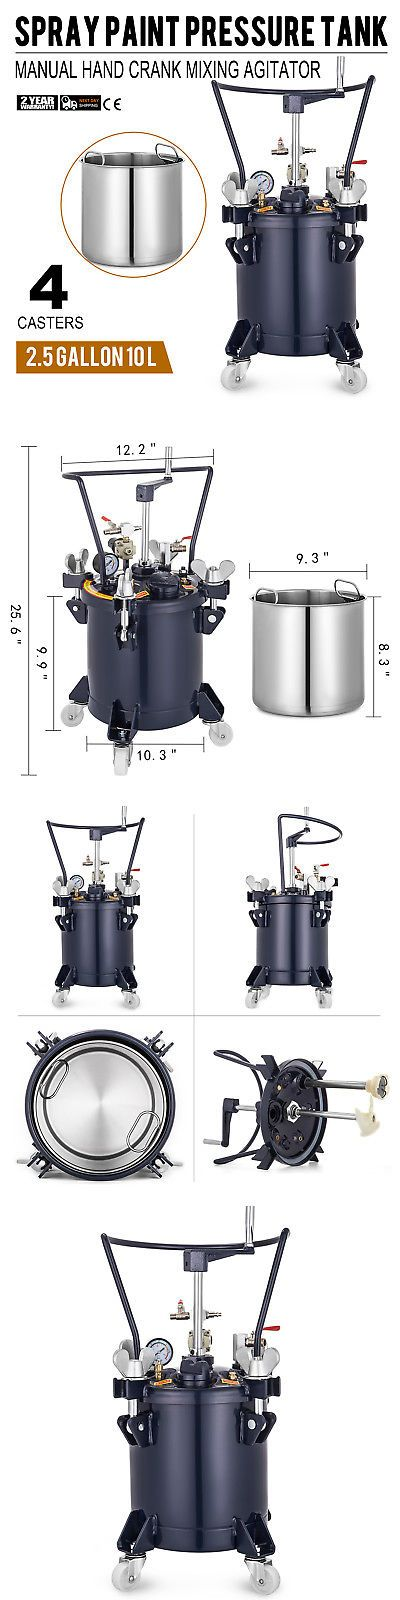 Paint Sprayers 79702 10 Liters Spray Paint Pressure Pot Tank Roll Caster 4 Casters Mixing Agitator Buy It Now Onl Paint Sprayer Pressure Pot Spray Painting